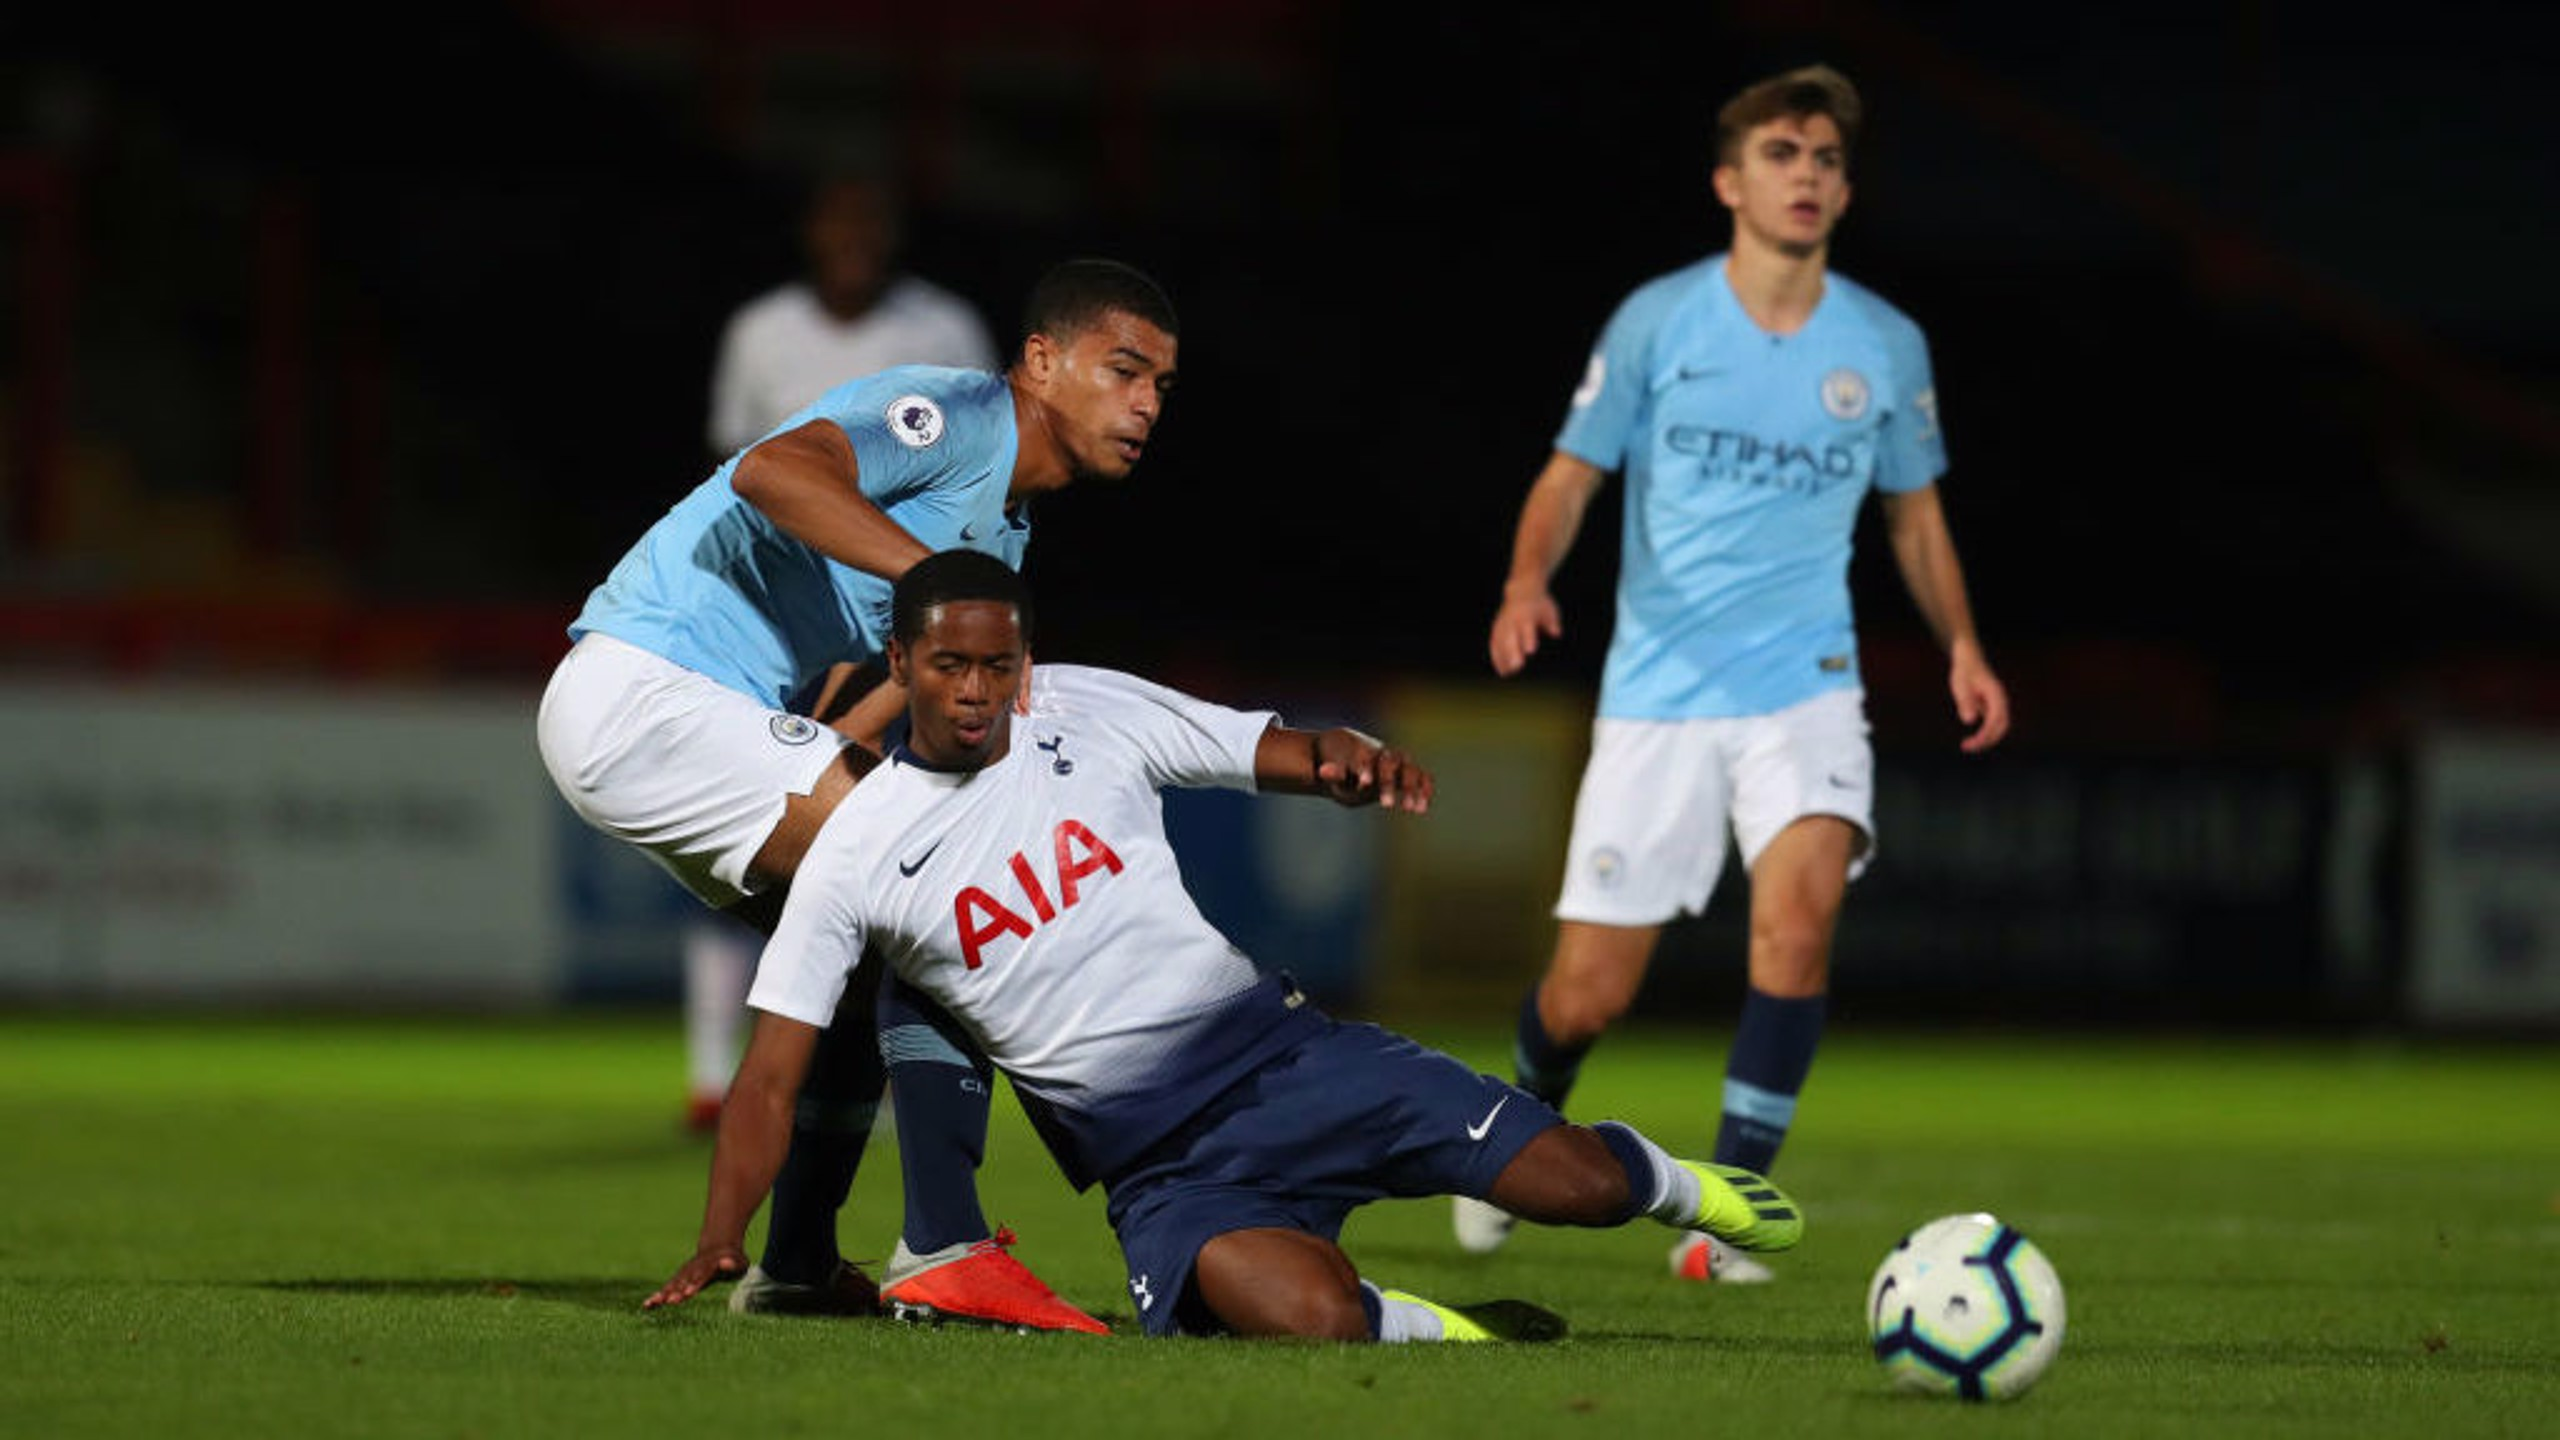 10-man City edged out by Spurs